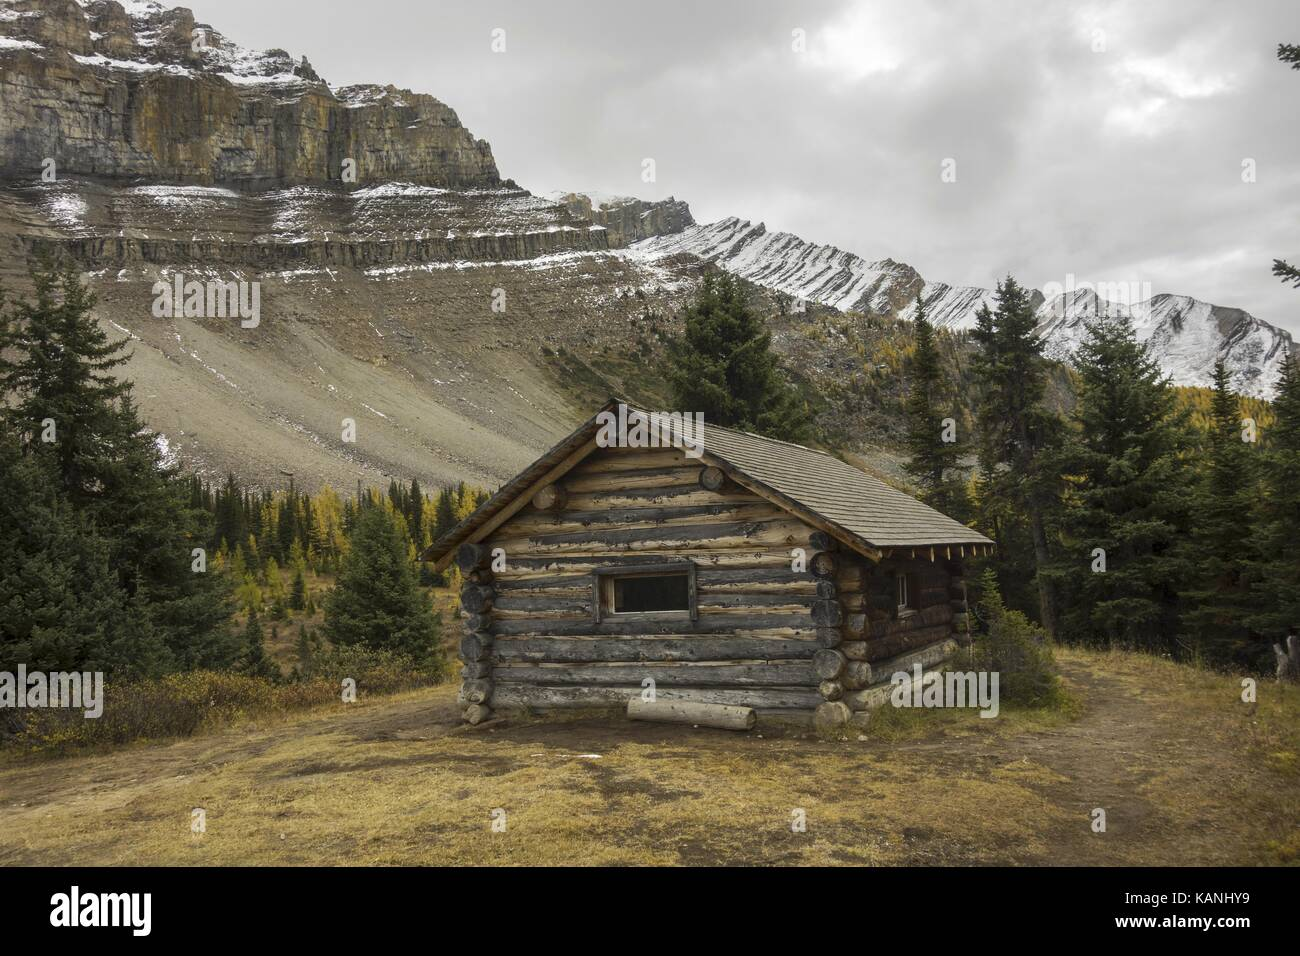 Canada hut stock photos canada hut stock images alamy for Ice fishing cabins alberta